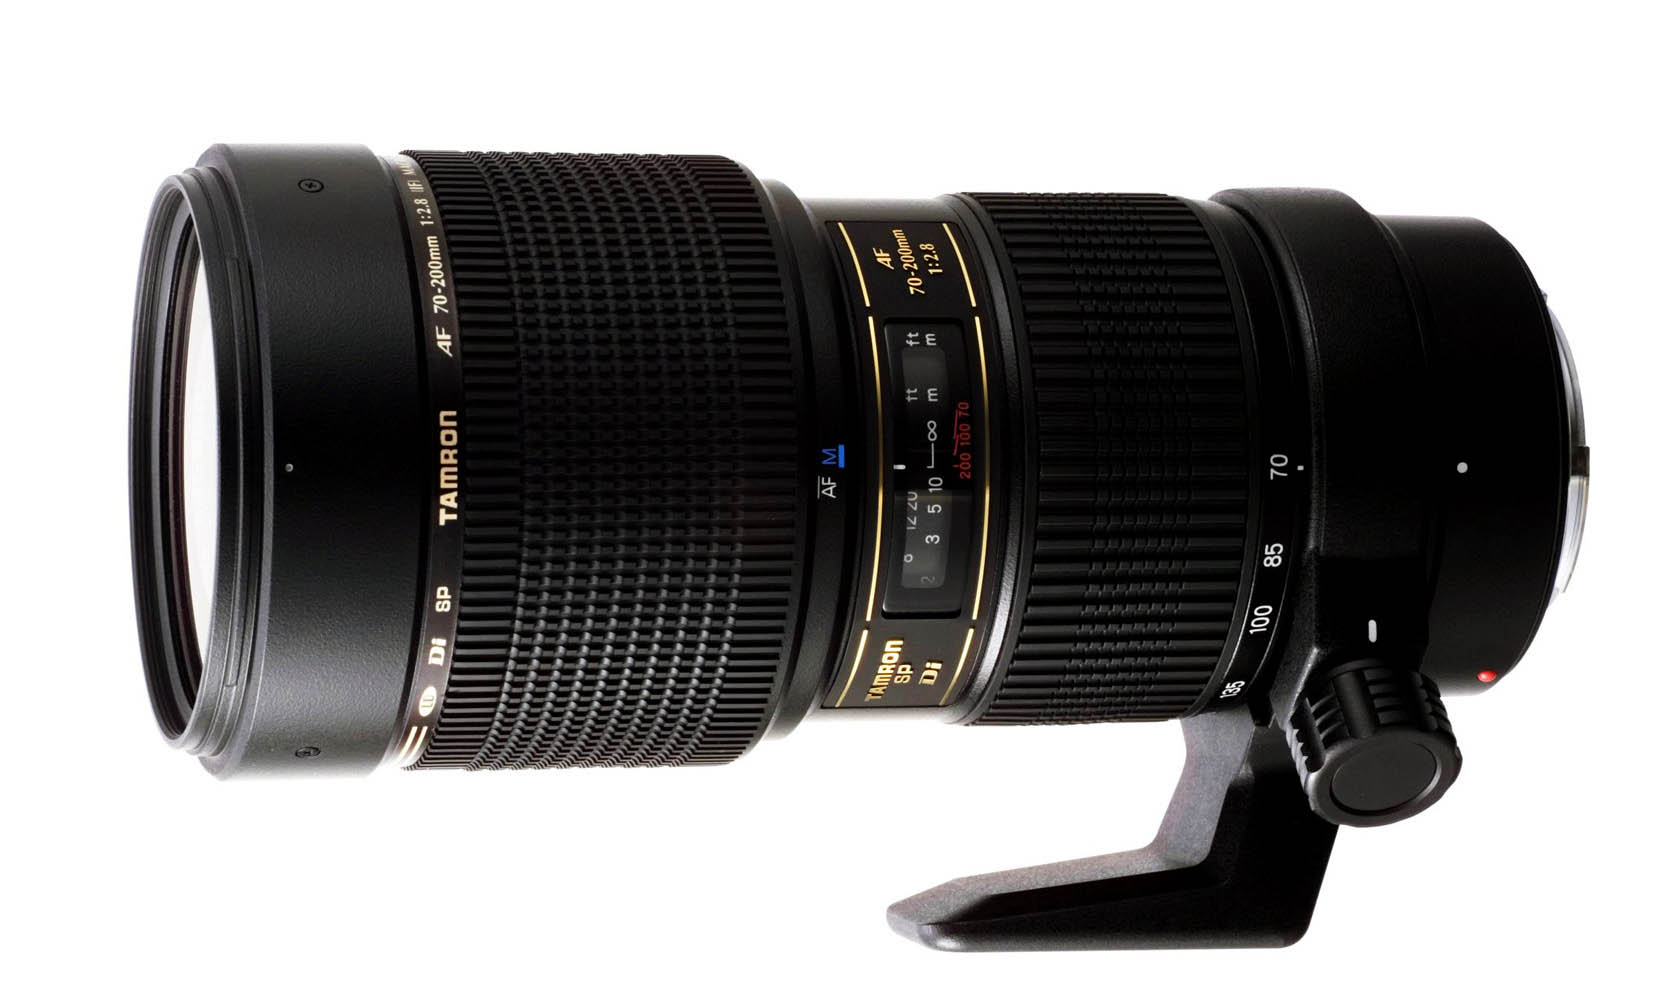 Image of Tamron SP AF 70-200mm f/2.8 Di LD (IF) Macro Lens For Canon Mount